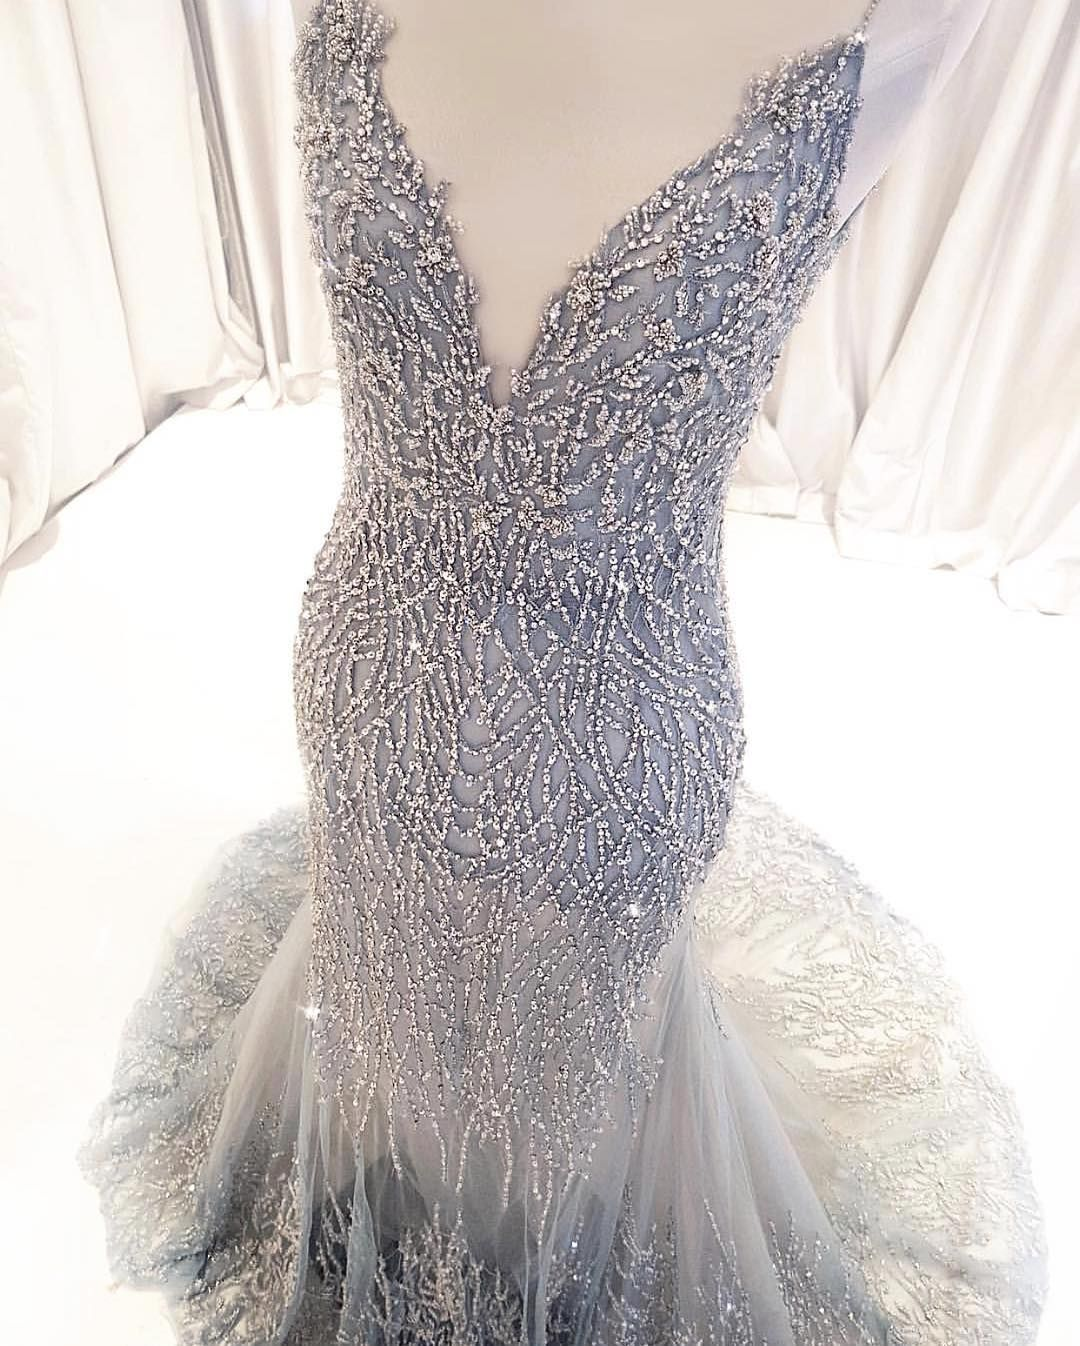 Custom dresses inspired by haute couture designer evening fashion